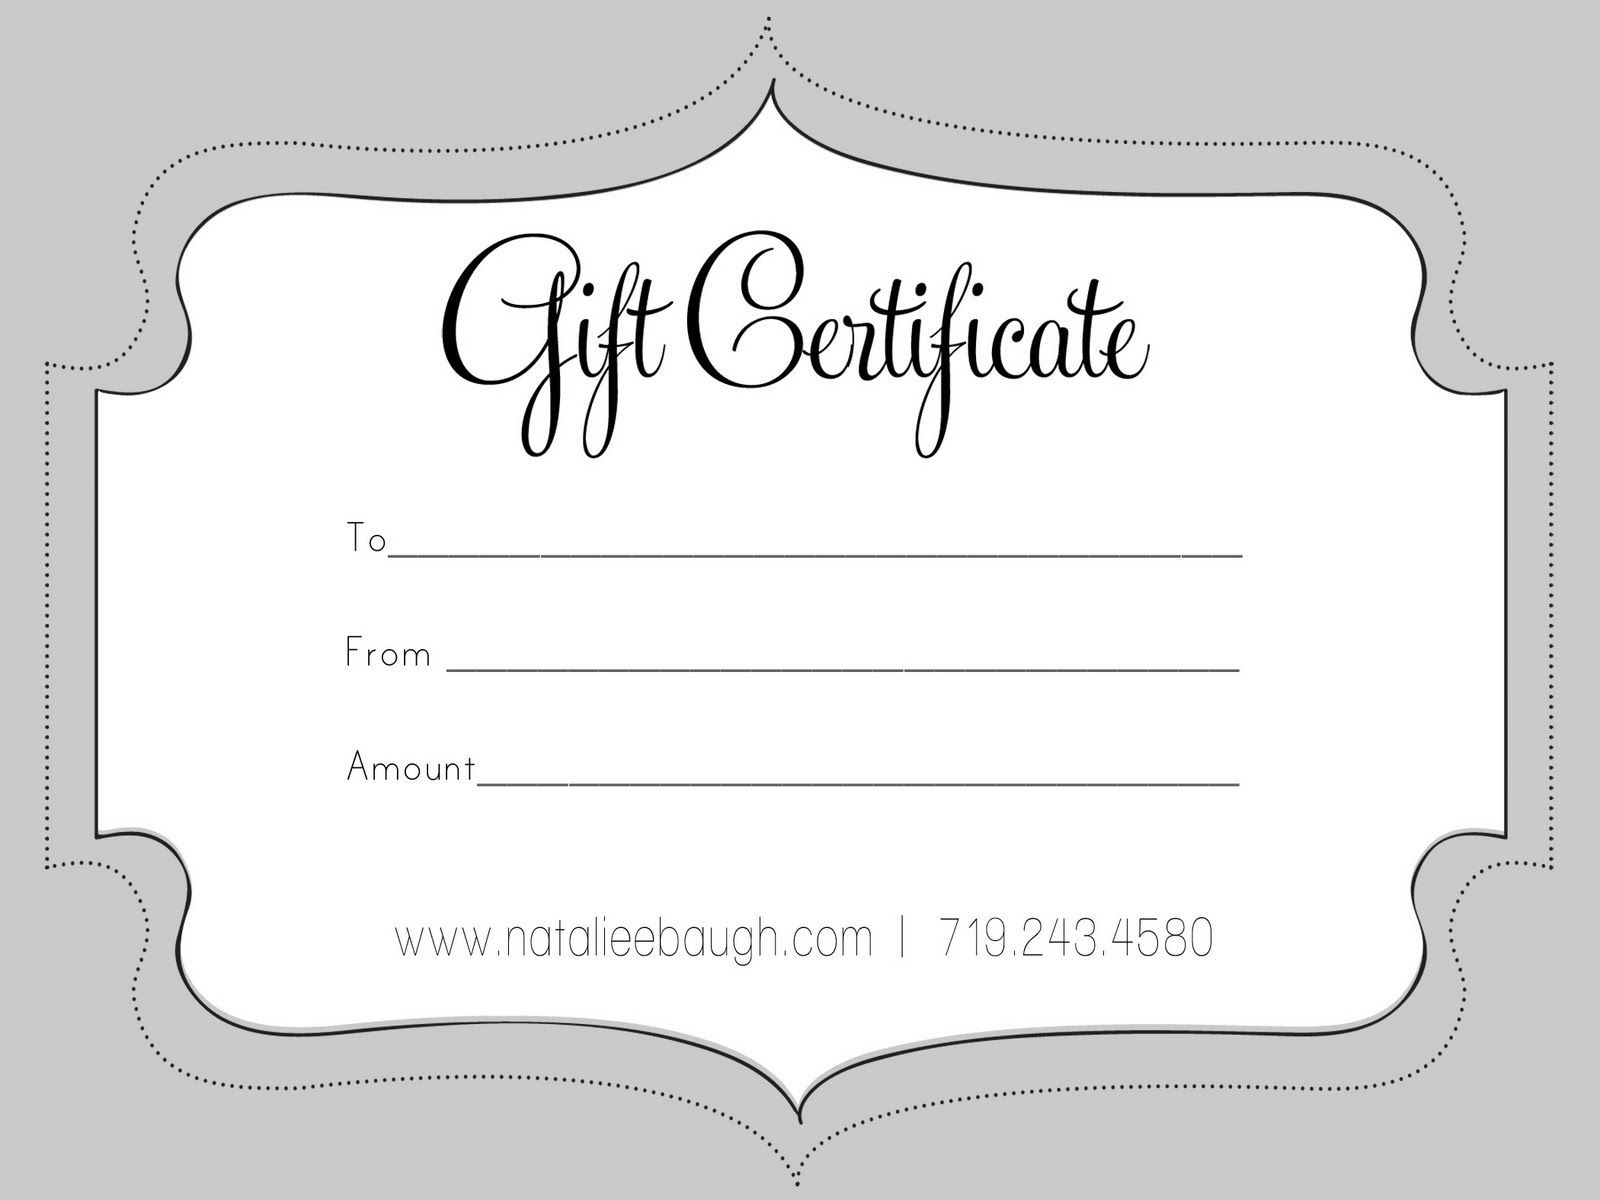 003 Awesome Blank Gift Certificate Template High Def  Free Printable DownloadableFull